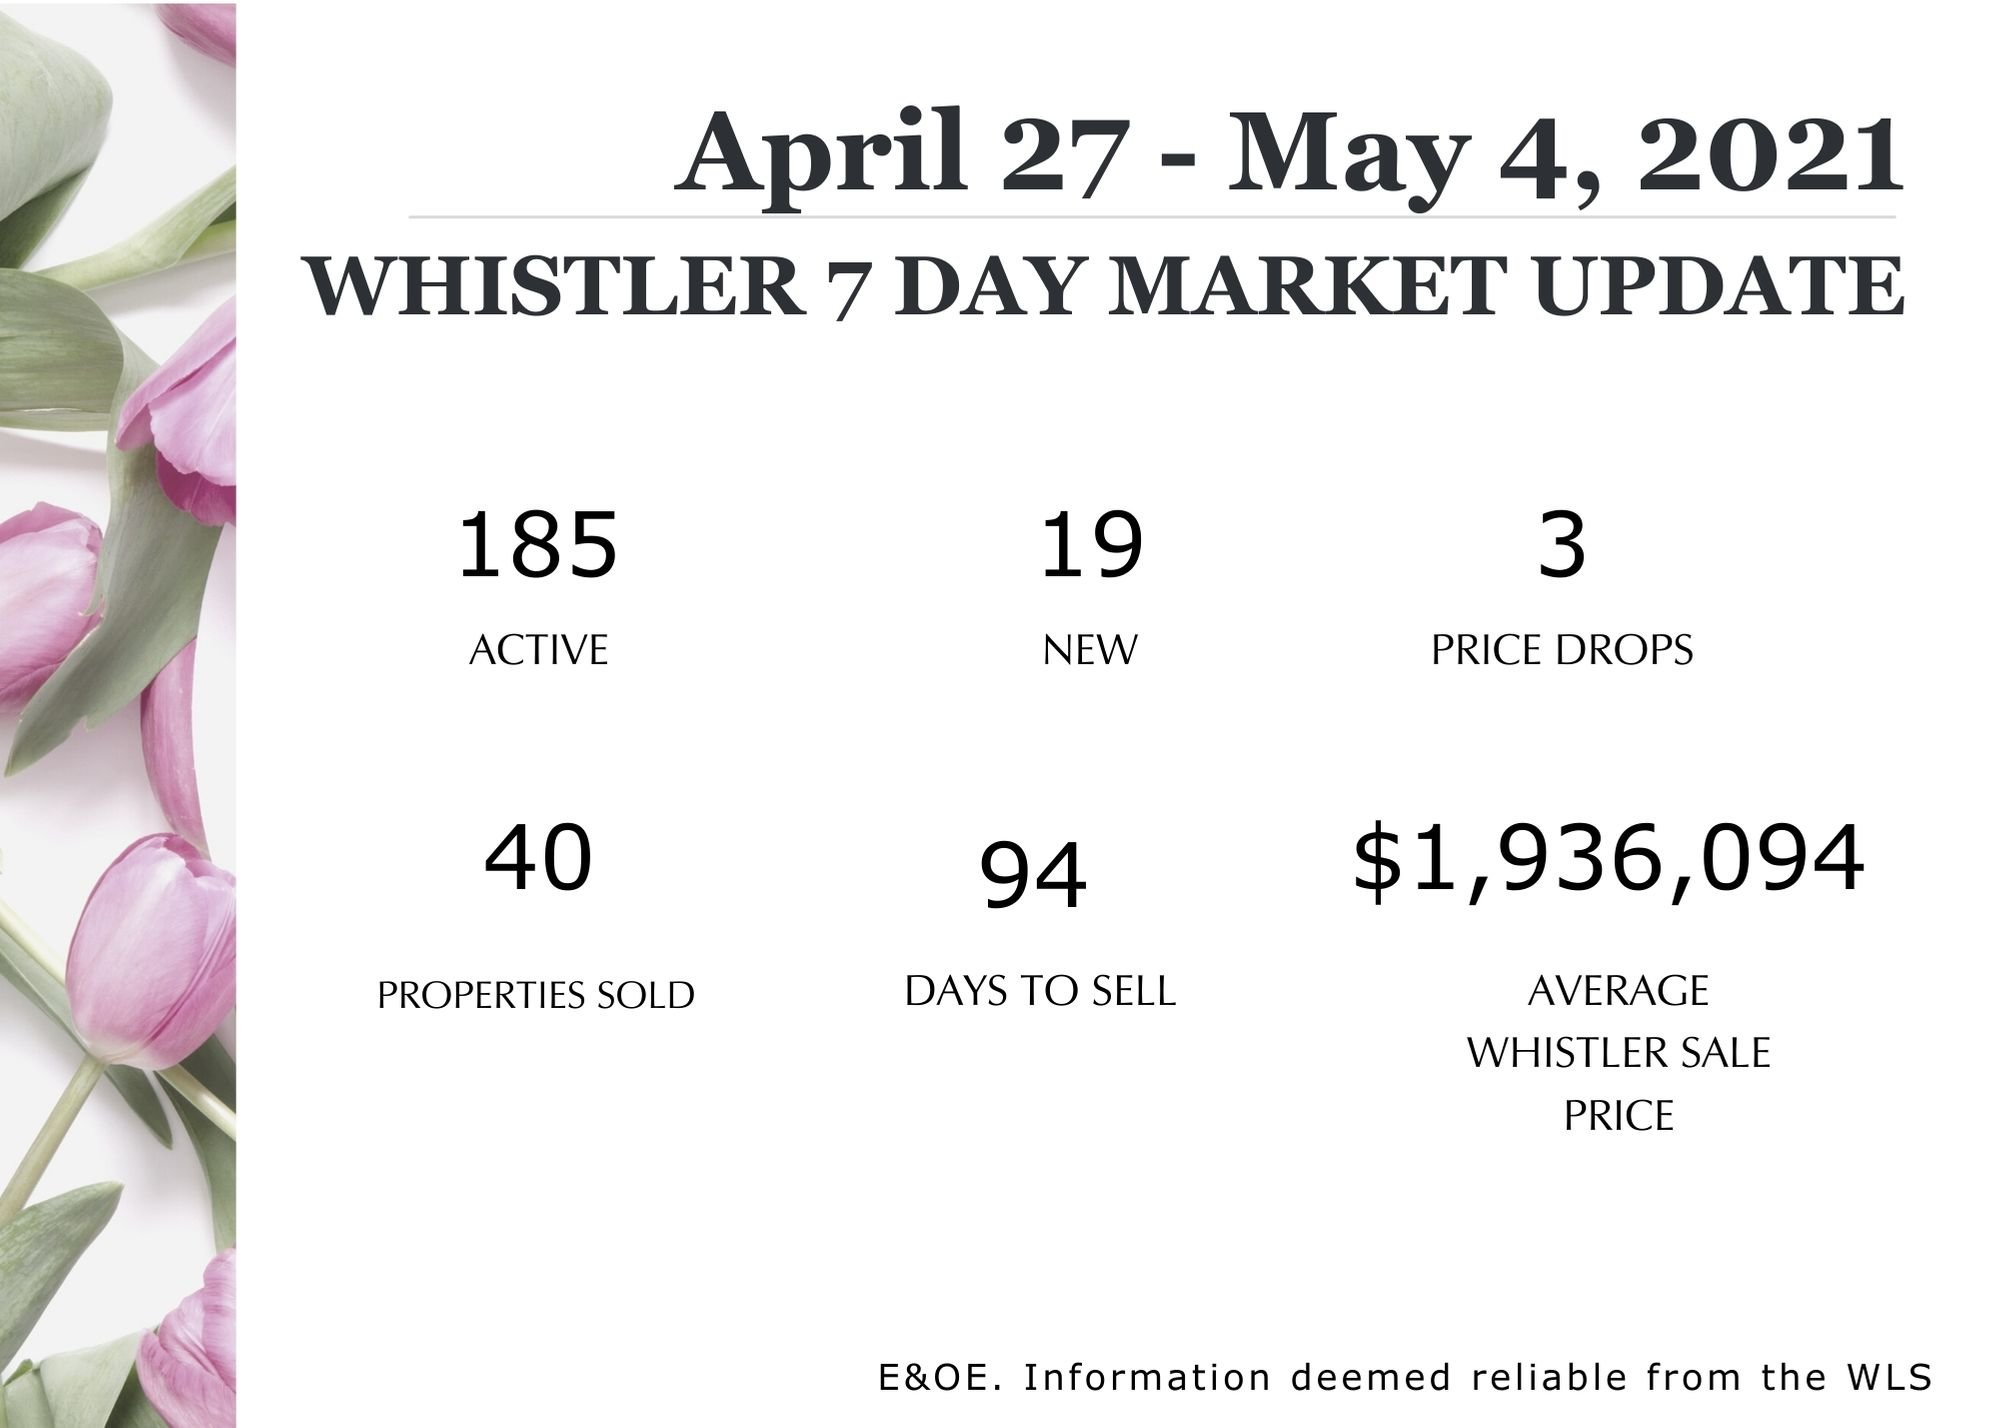 april 27 to May 4 market update